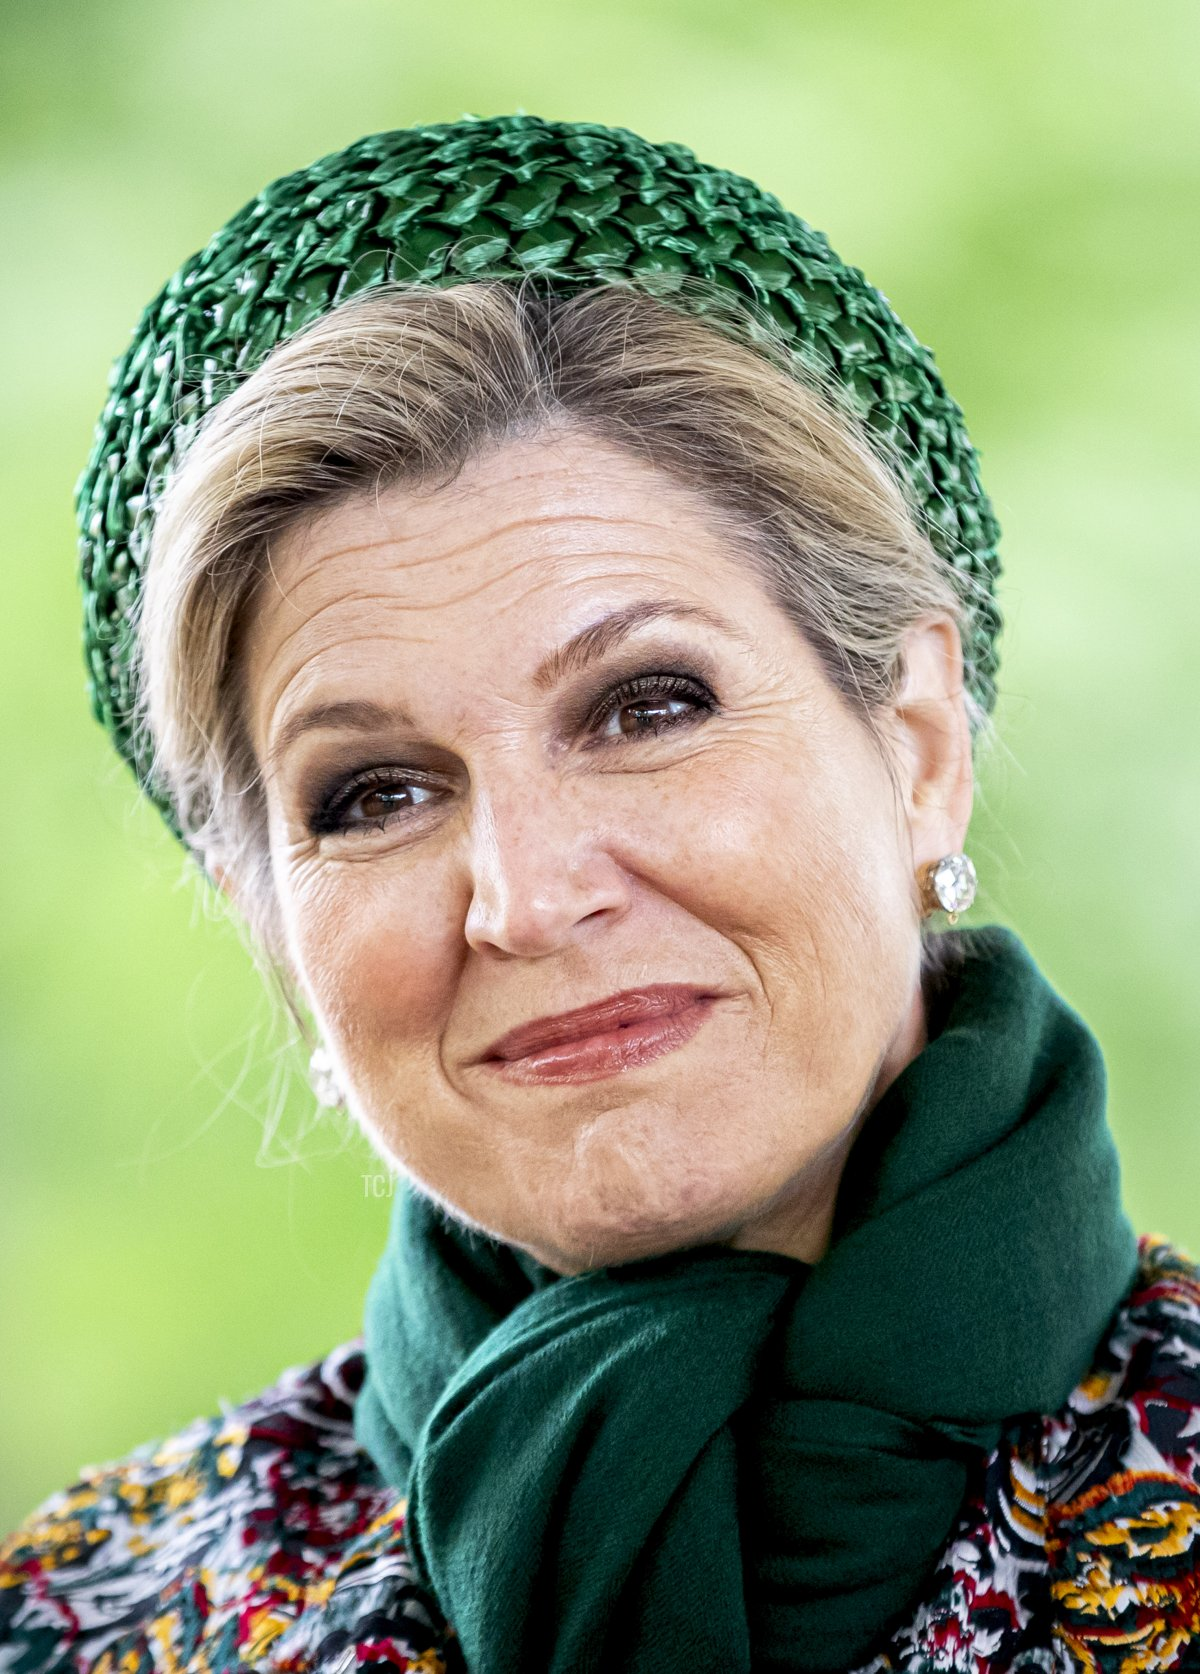 Queen Maxima of The Netherlands visits the Passiespelen in open air theater De Doolhof during their region visit to North-Limburg on May 27, 2021 in Venlo, Netherlands